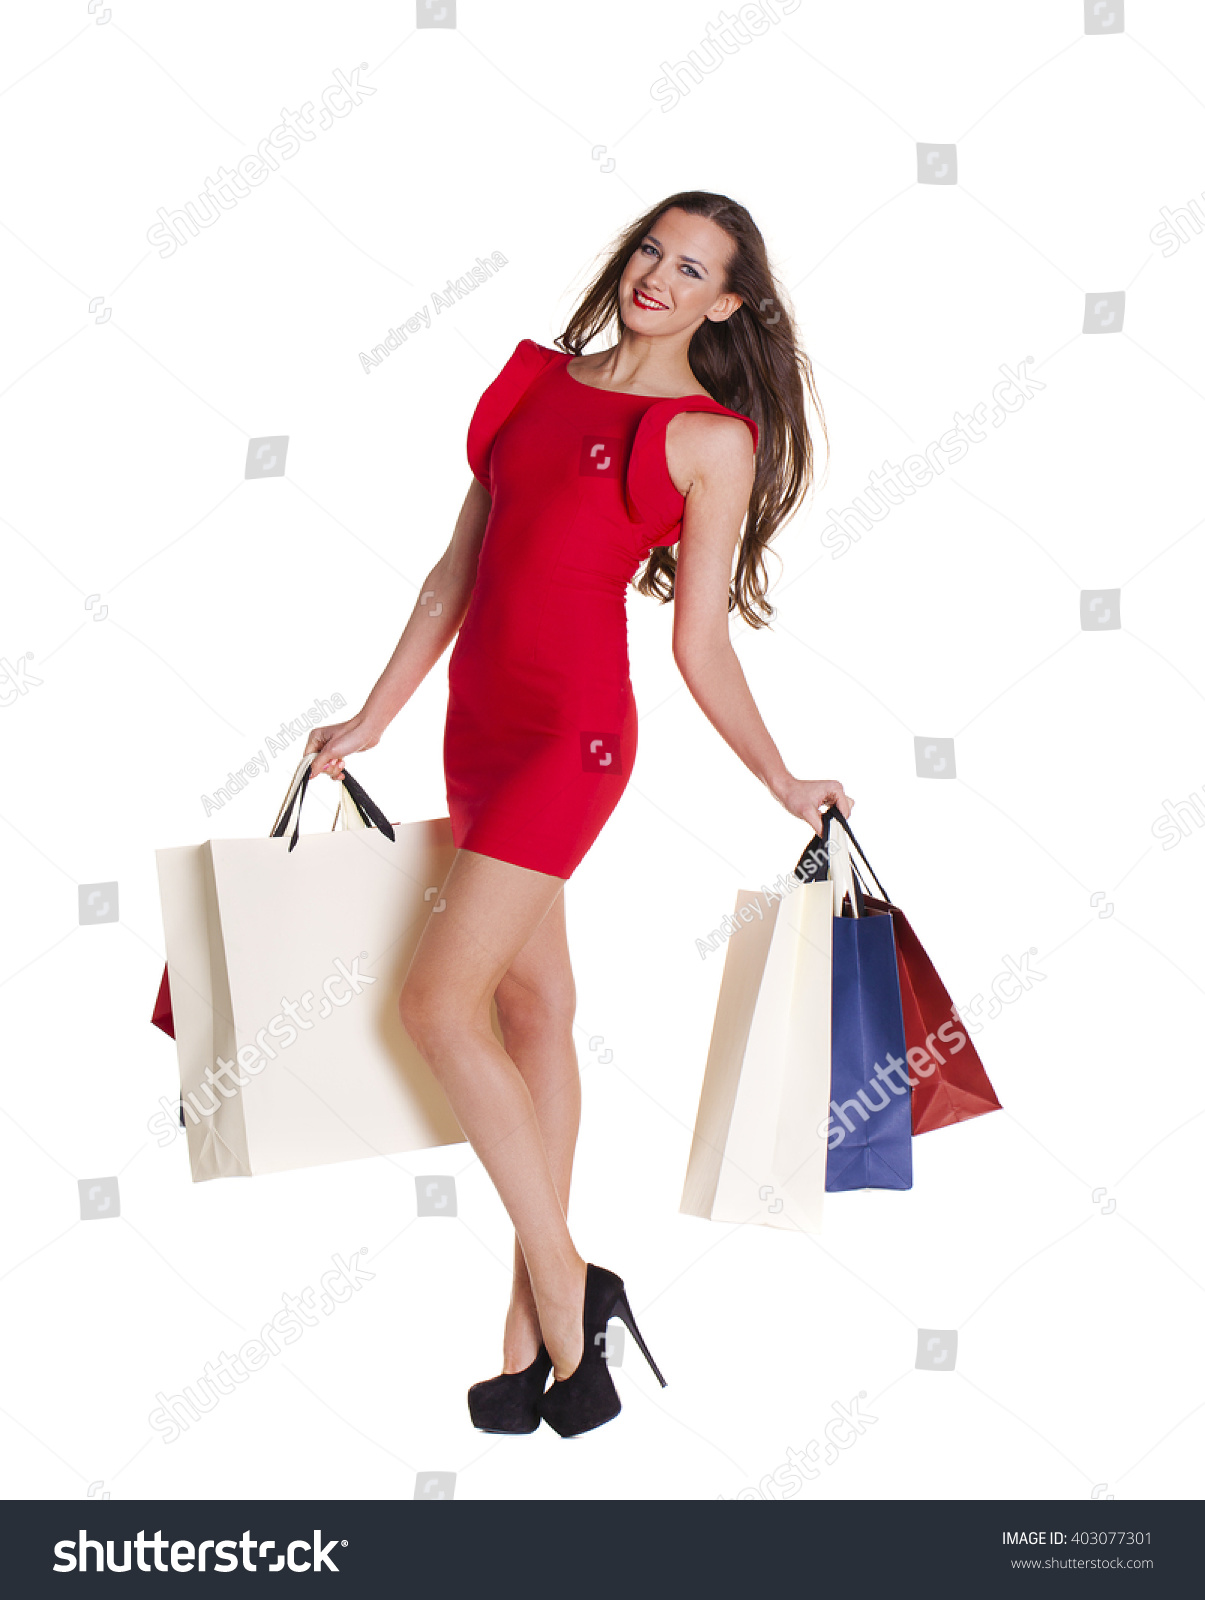 Woman posing with shopping bags isolated on white background full - White Background Happy Girl Hold Shopping Bags Red Dress Preview Save To A Lightbox